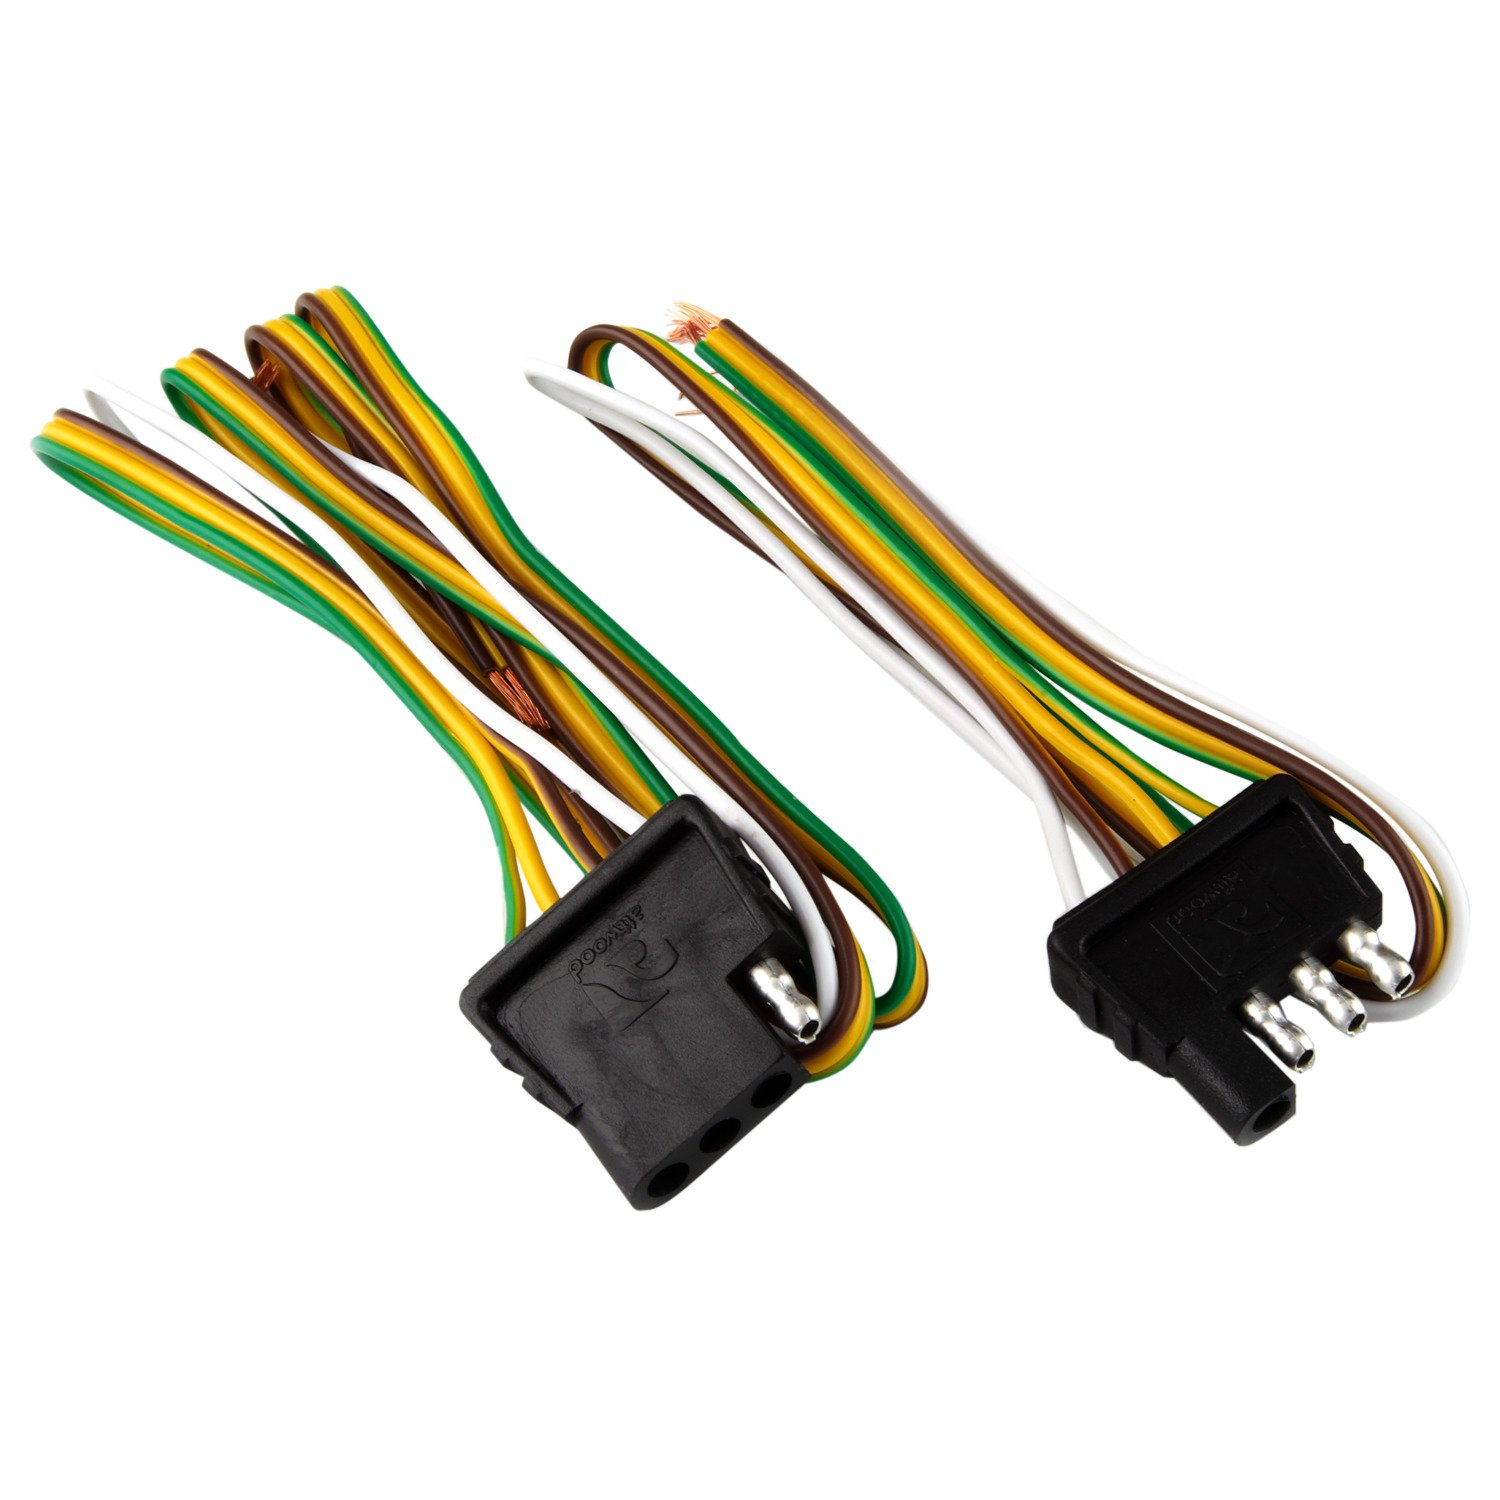 attwood 4 way flat wiring harness kit for vehicles and trailers rh academy com 4 flat wiring harness 7 pin flat wiring harness